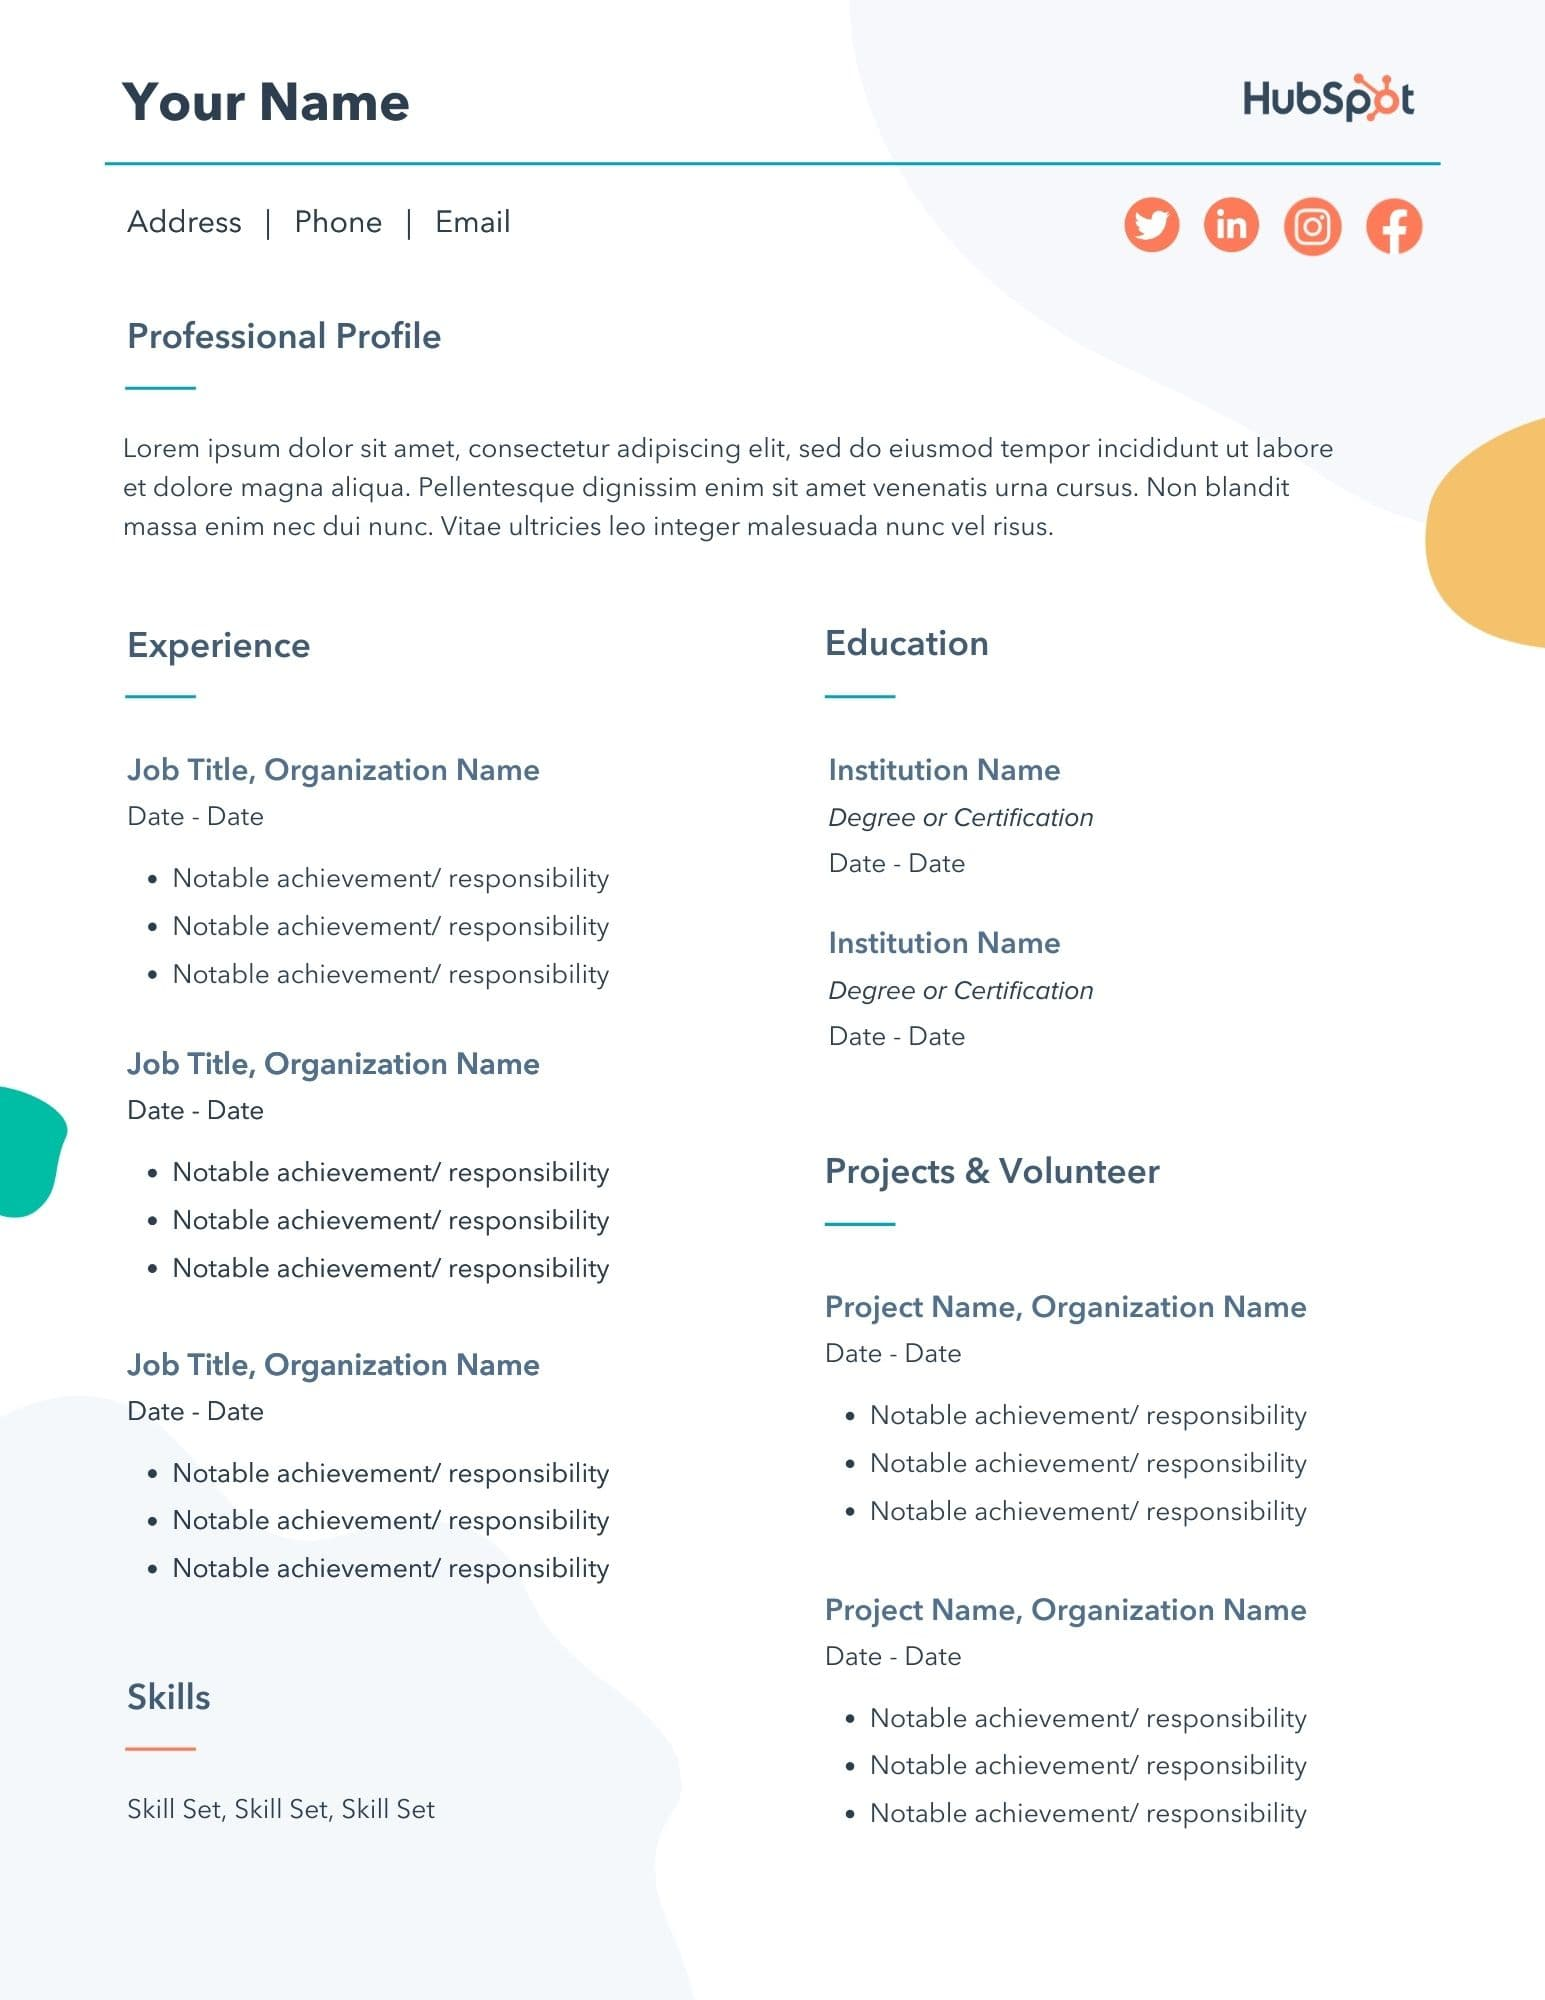 free resume templates for microsoft word to make your own latest format experienced Resume Latest Resume Format For Experienced